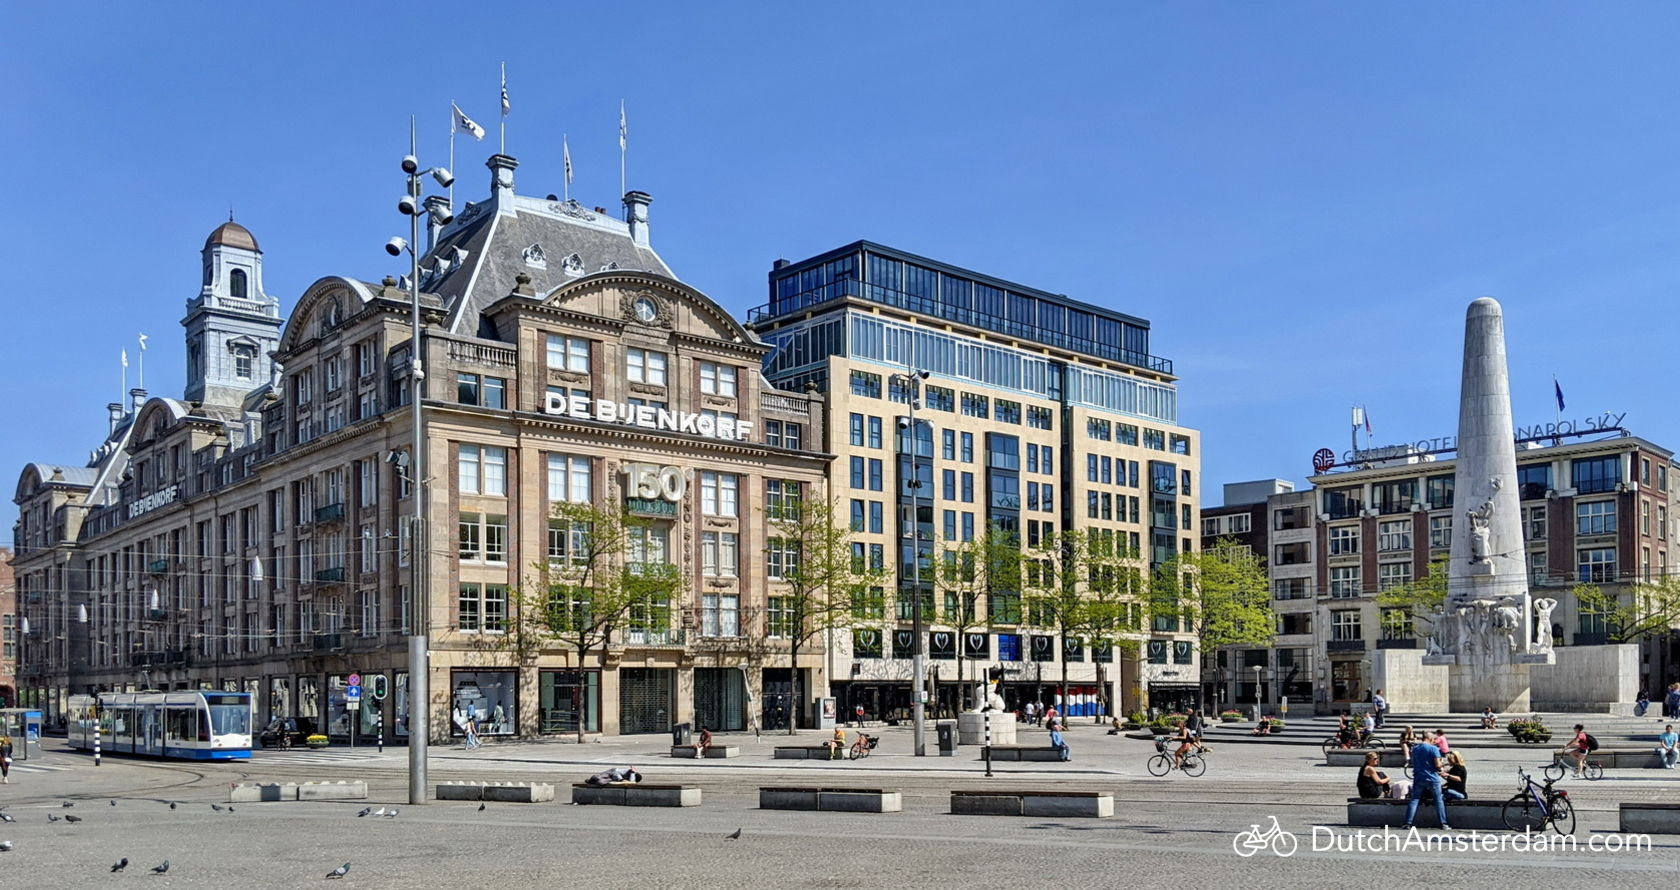 Amsterdam's famous Dam Square without the usual crowds